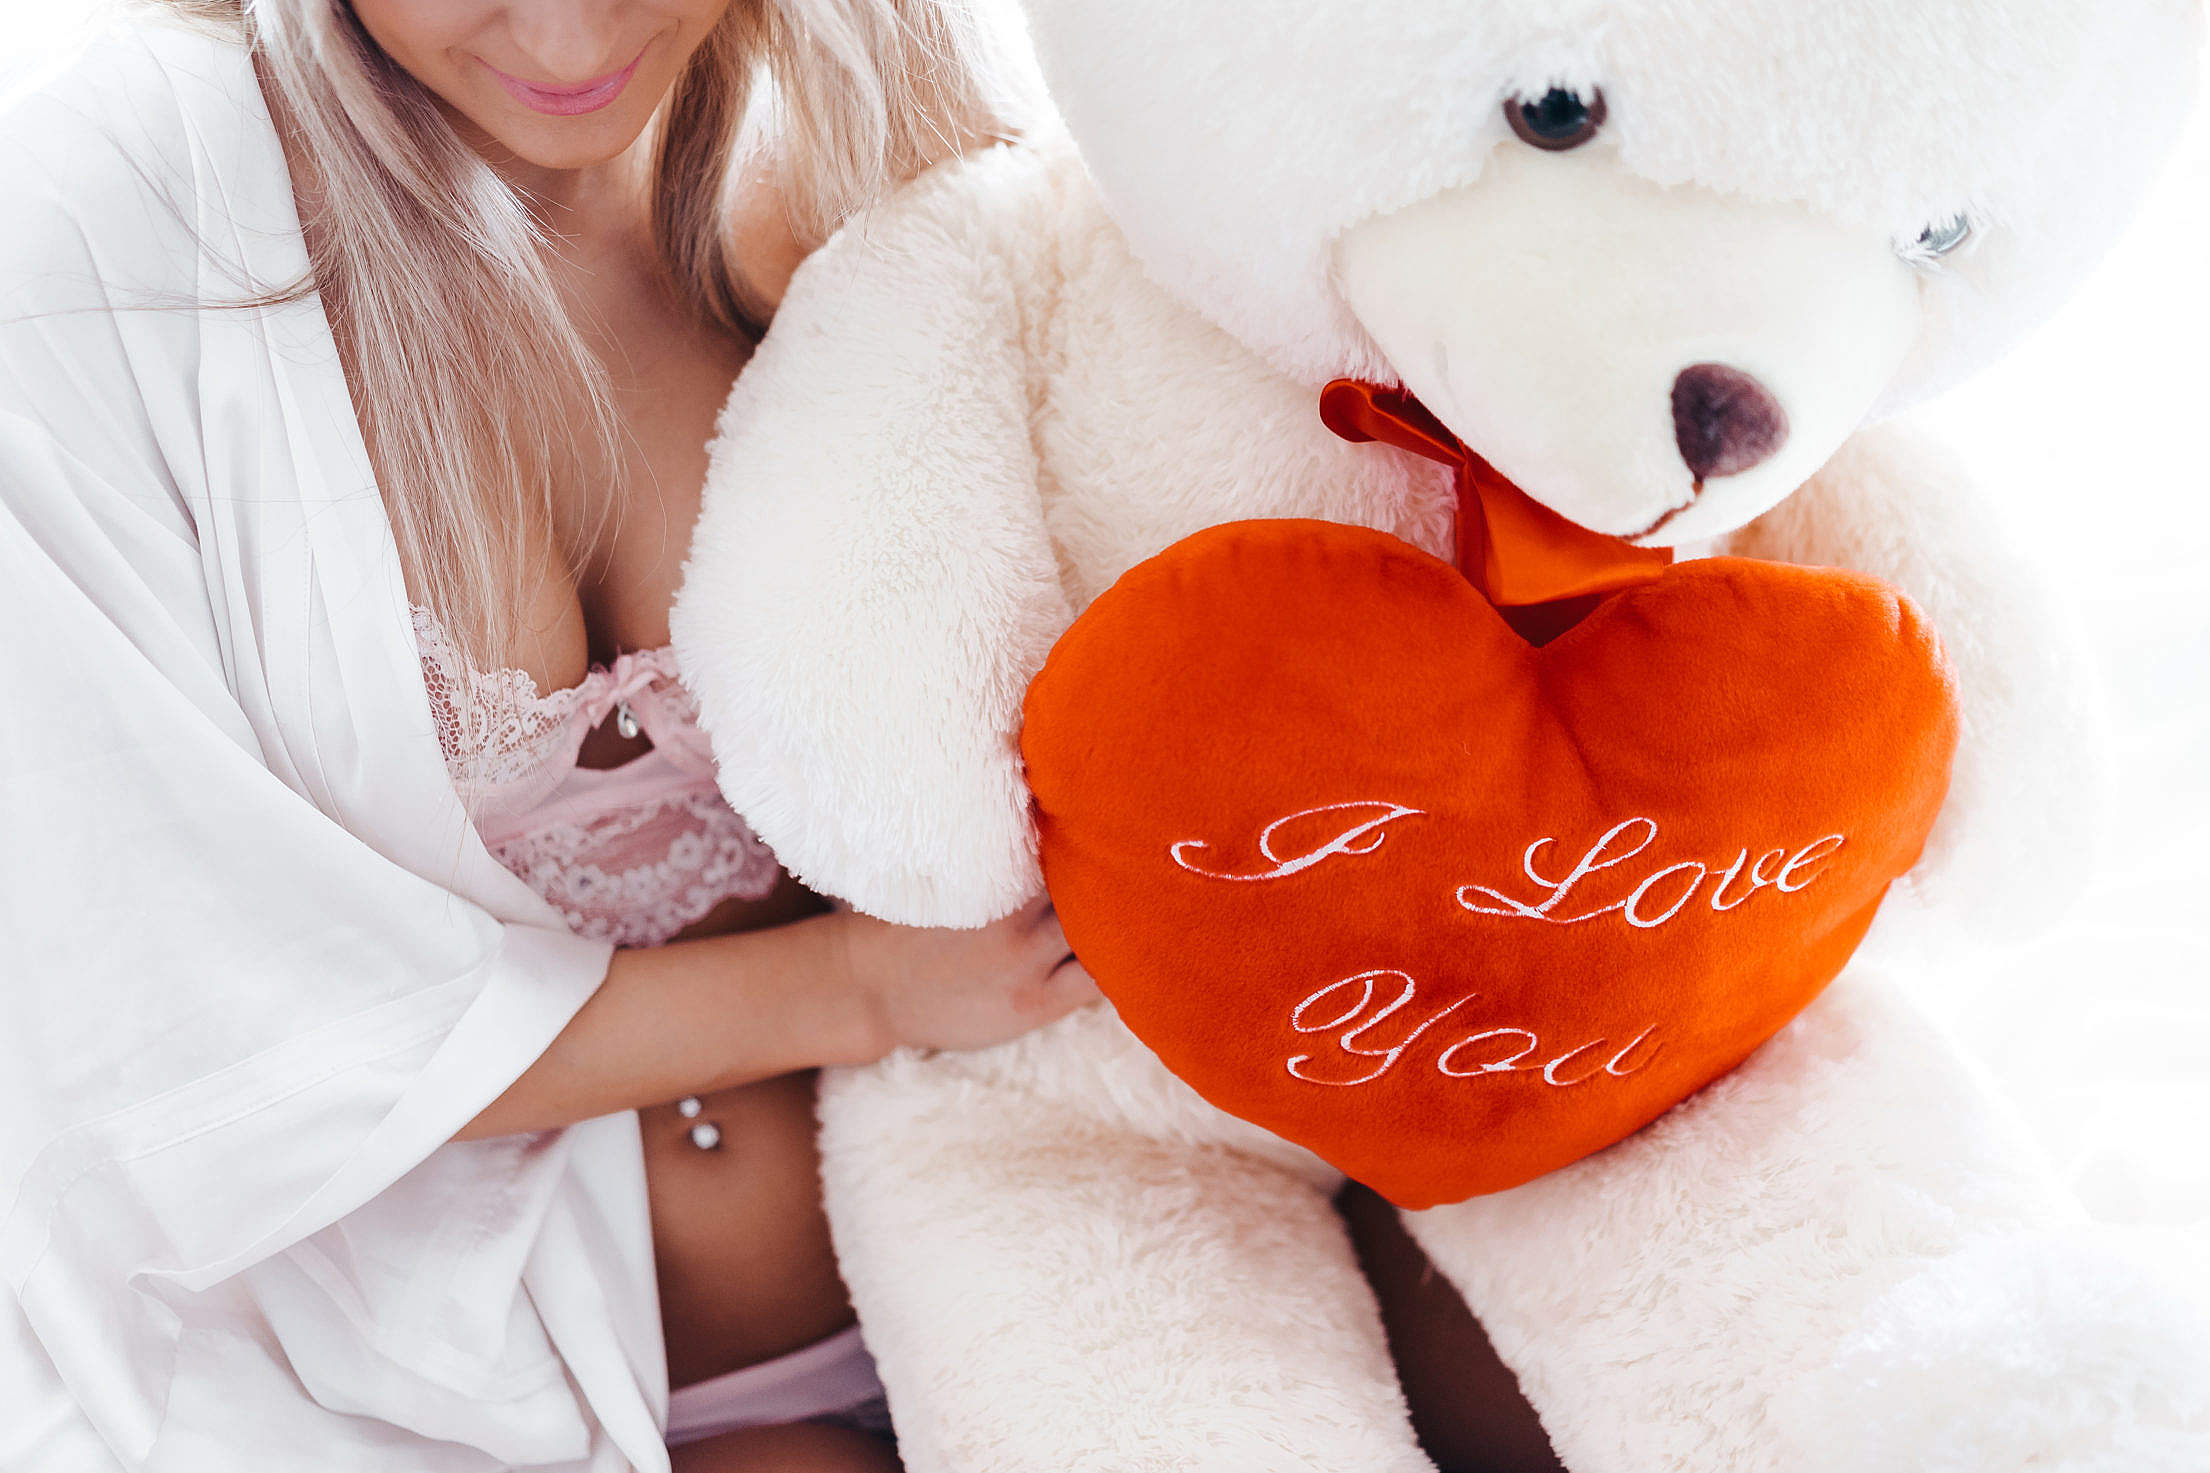 Smiling Woman and a Big White Teddy Bear with a Heart Free Stock Photo